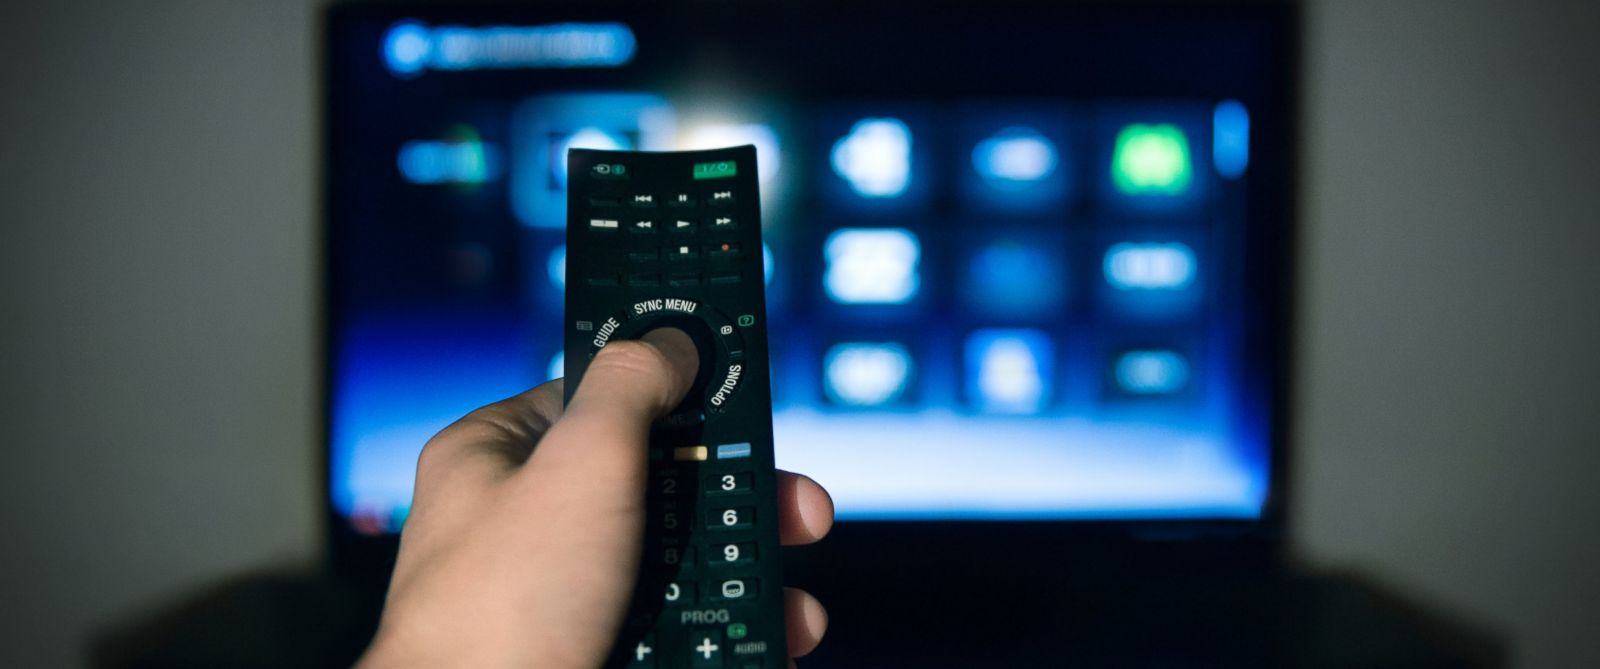 PHOTO: A man is pictured using a remote control for his television in this stock image.